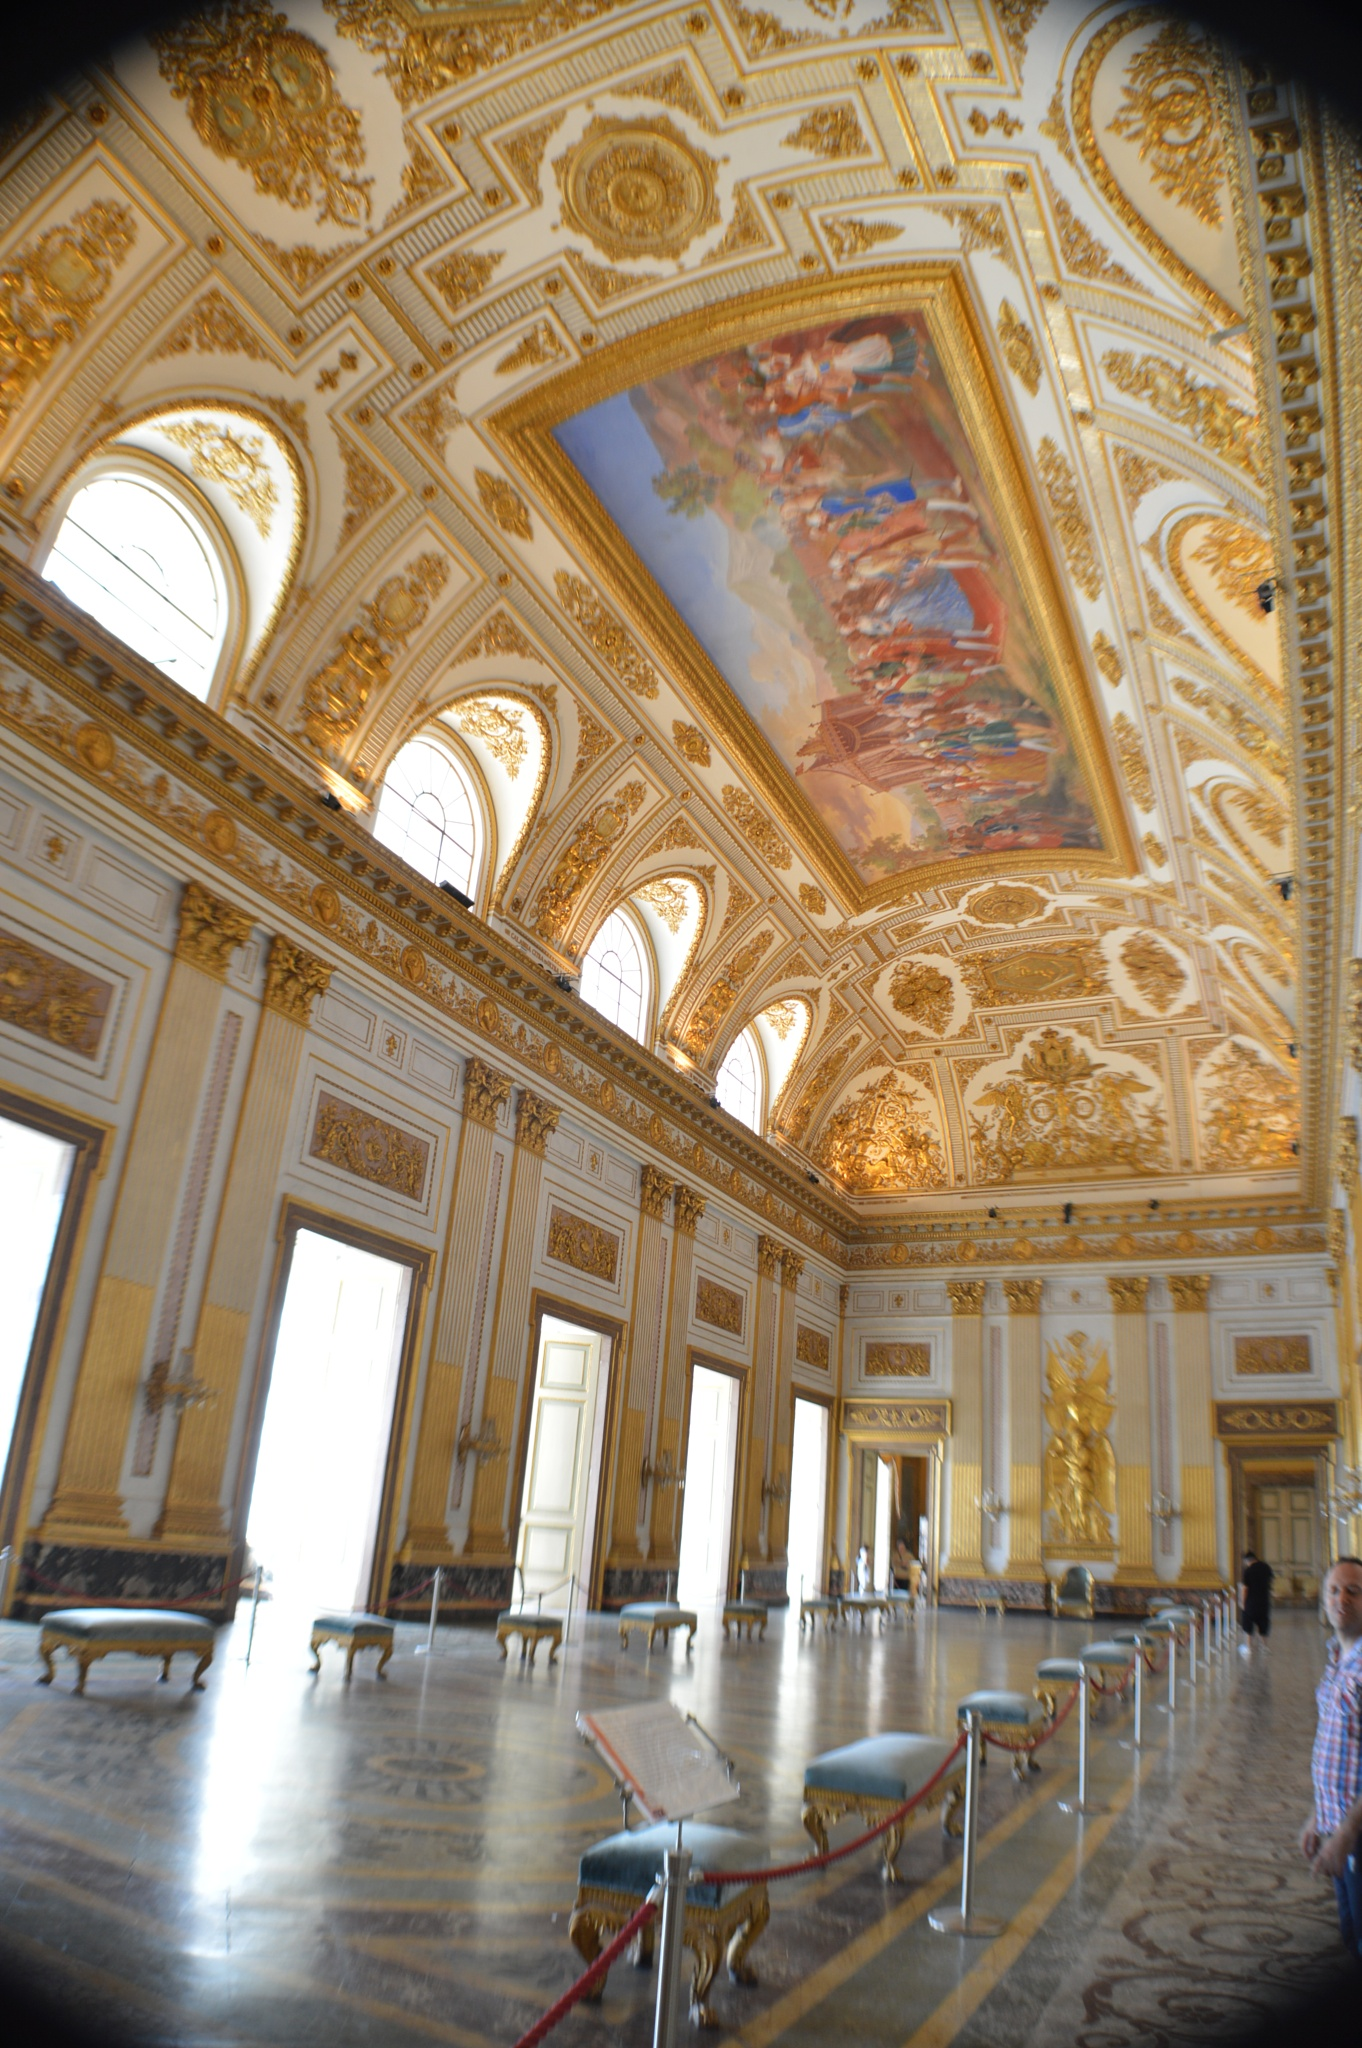 Royal palace of Caserta by Alessandro Deri